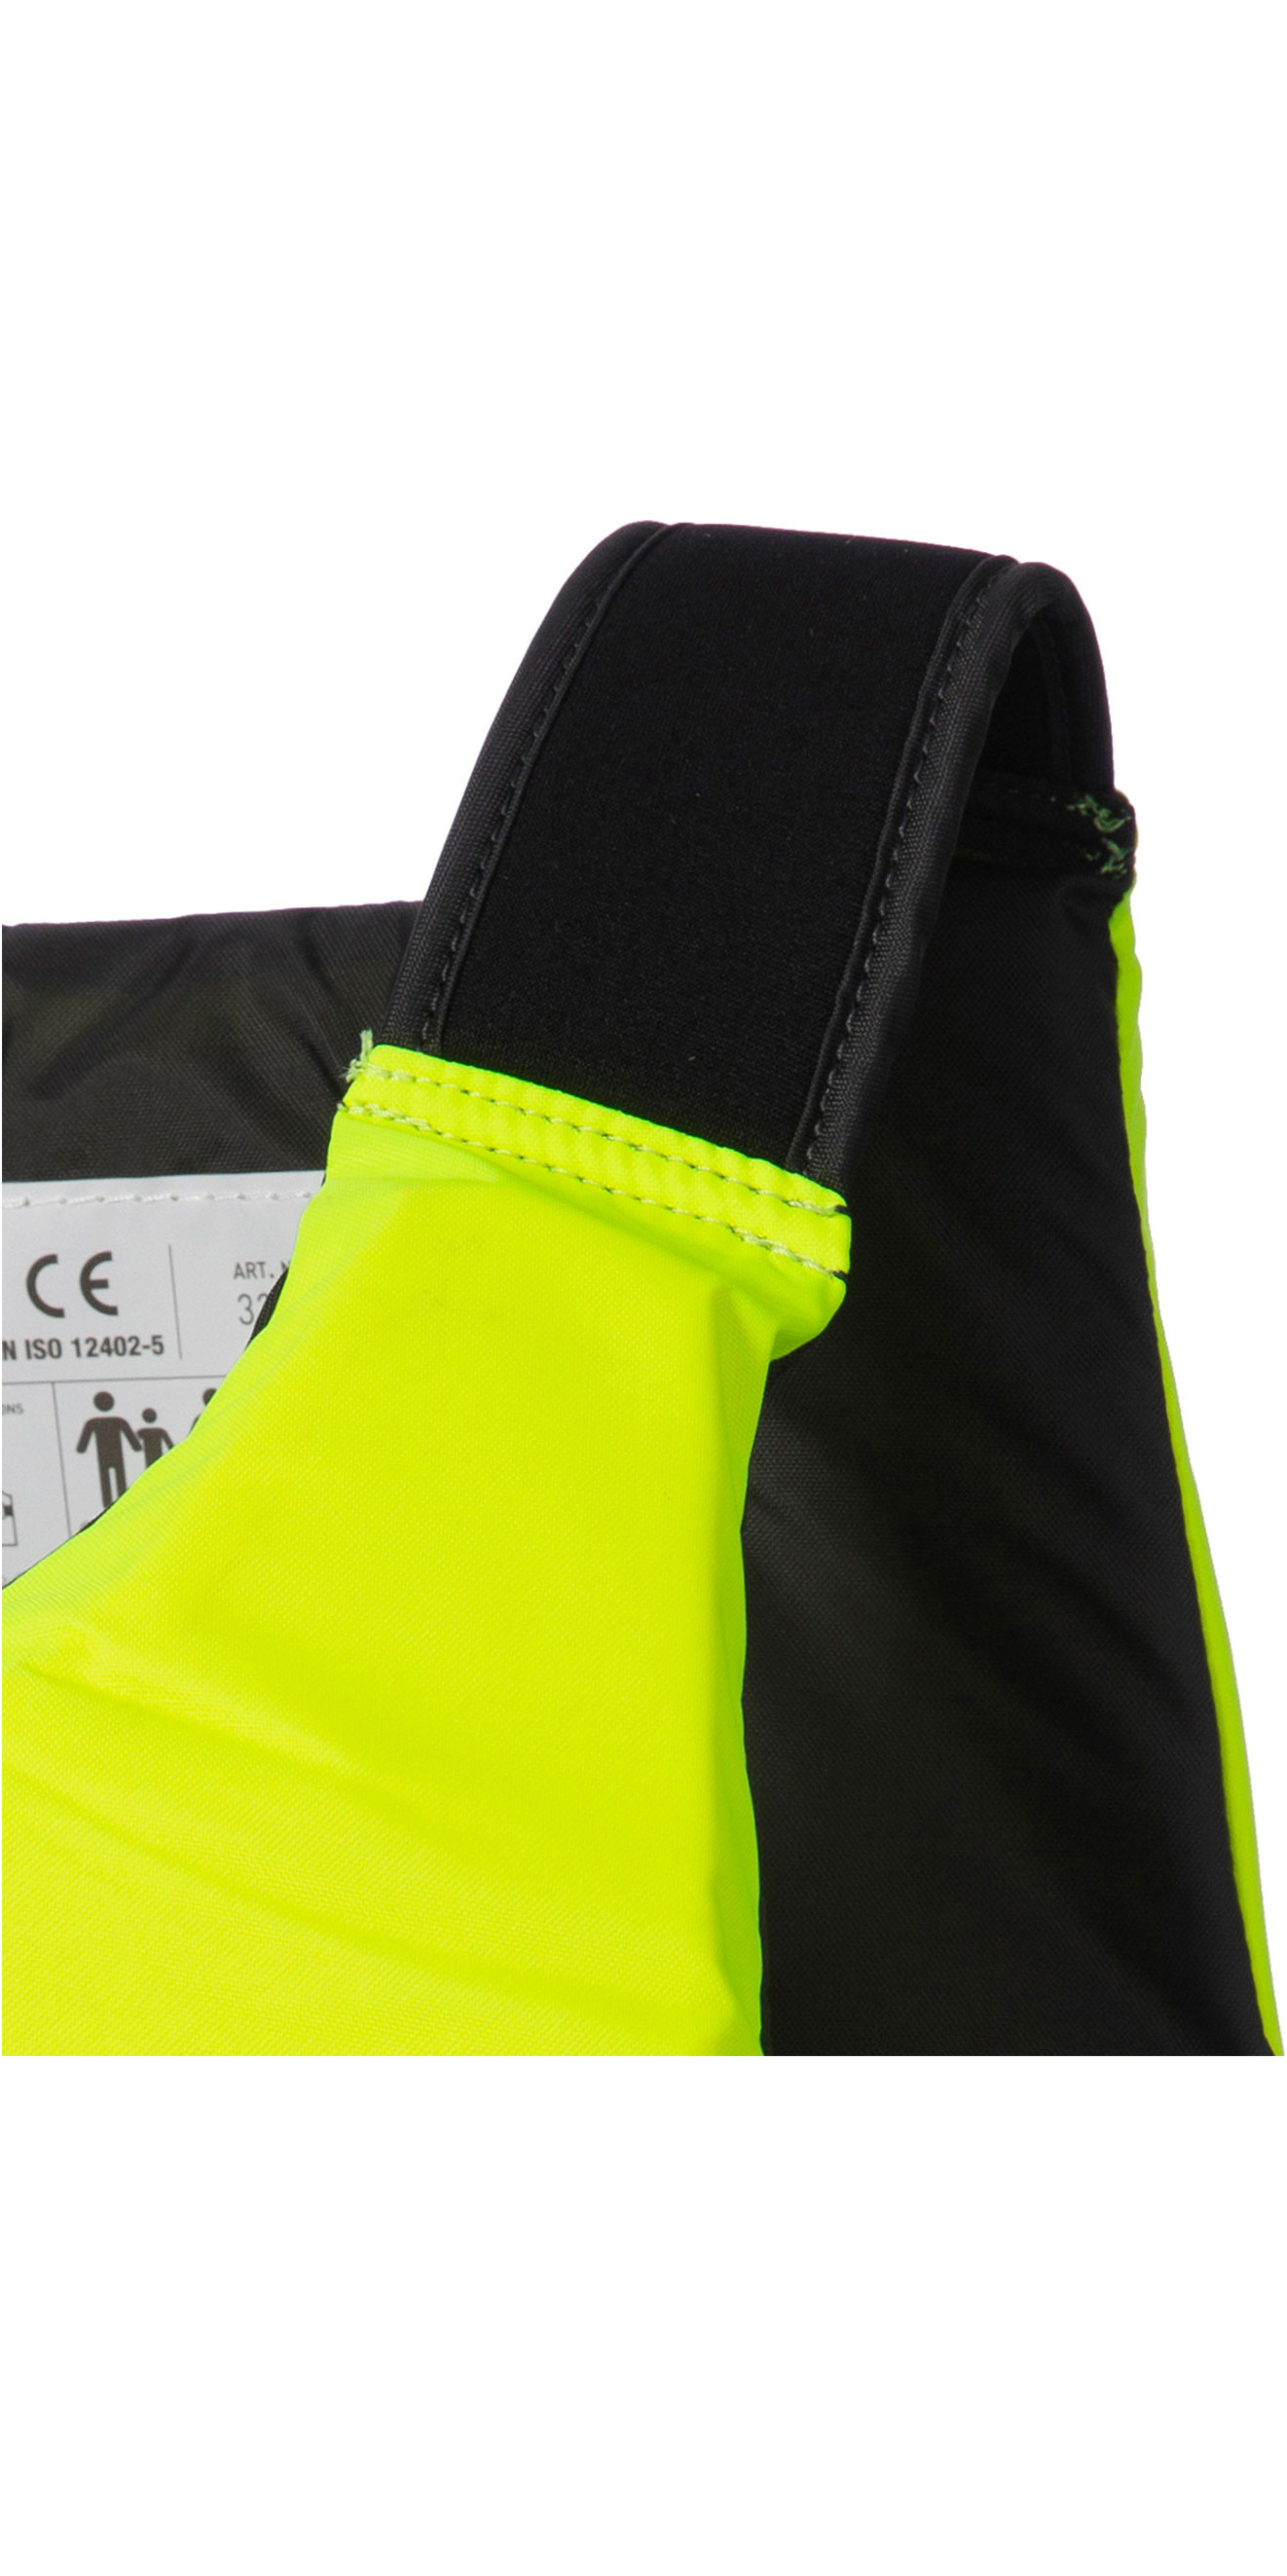 2020 Helly Hansen 50N Rider Vest / Buoyancy Aid Fluro Yellow 33820